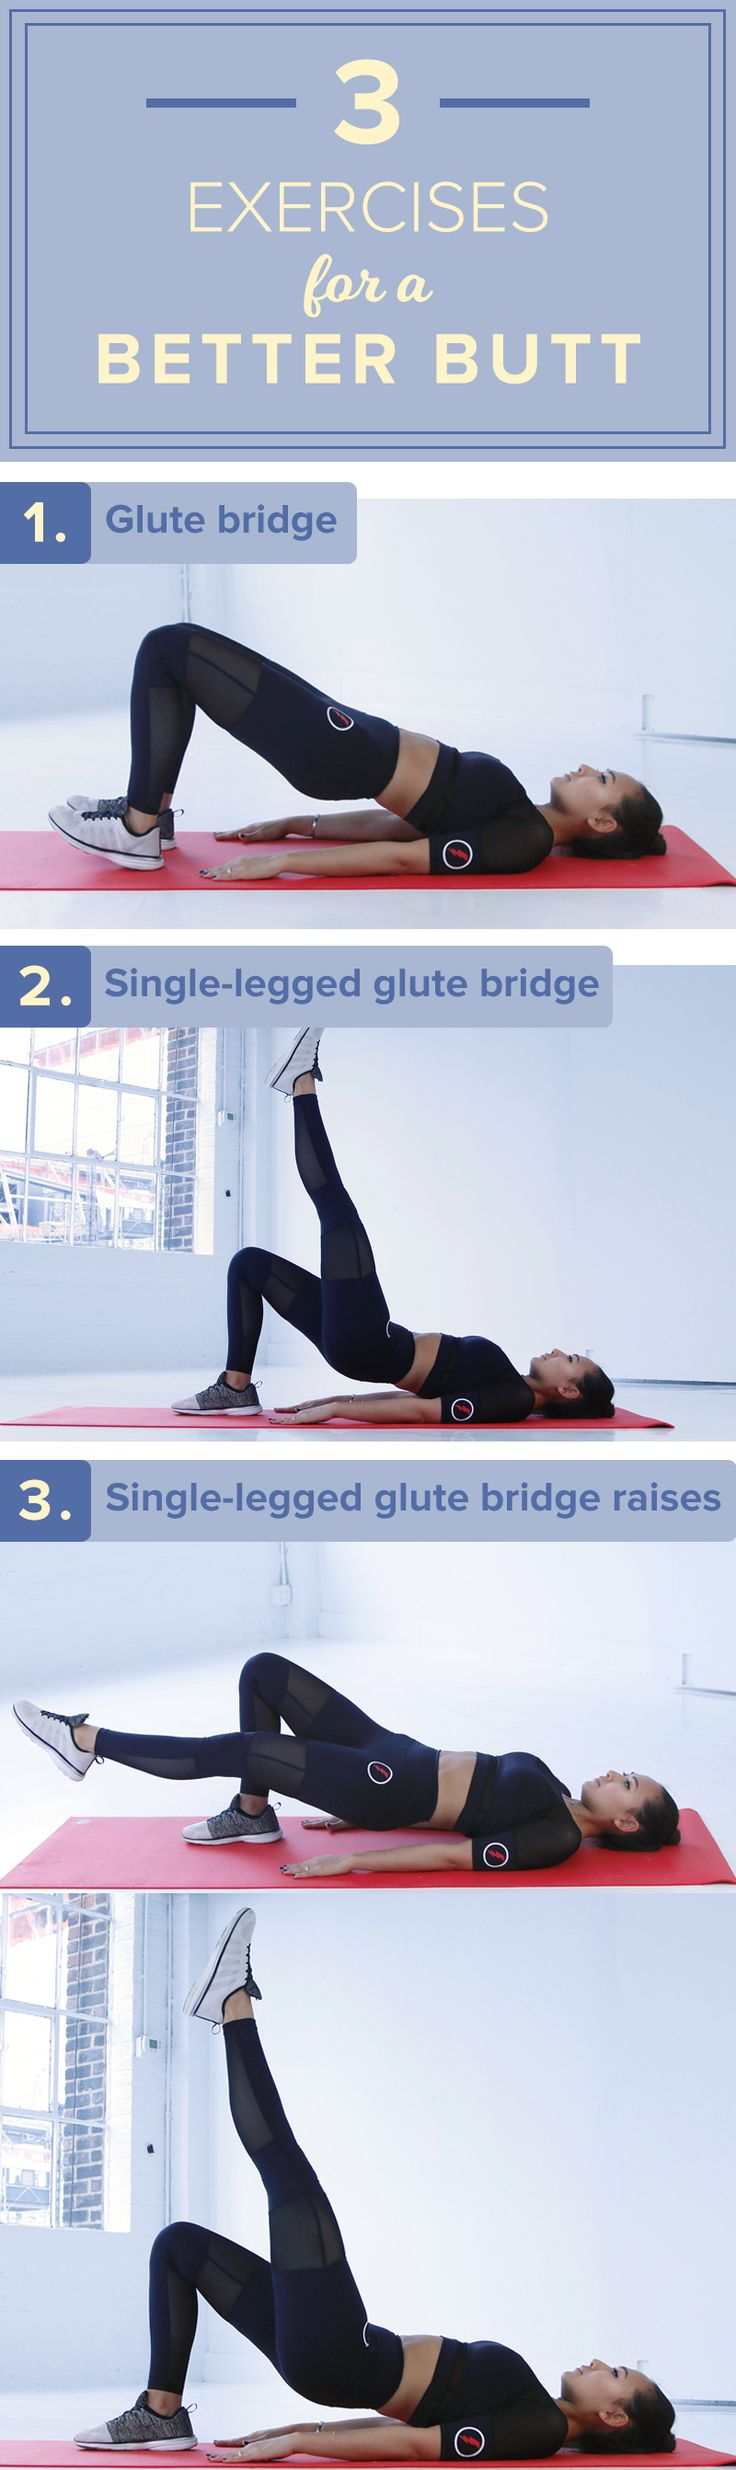 This workout is perfect for beginners. By doing these exercises as part of your fitness routine, it will tone your butt.